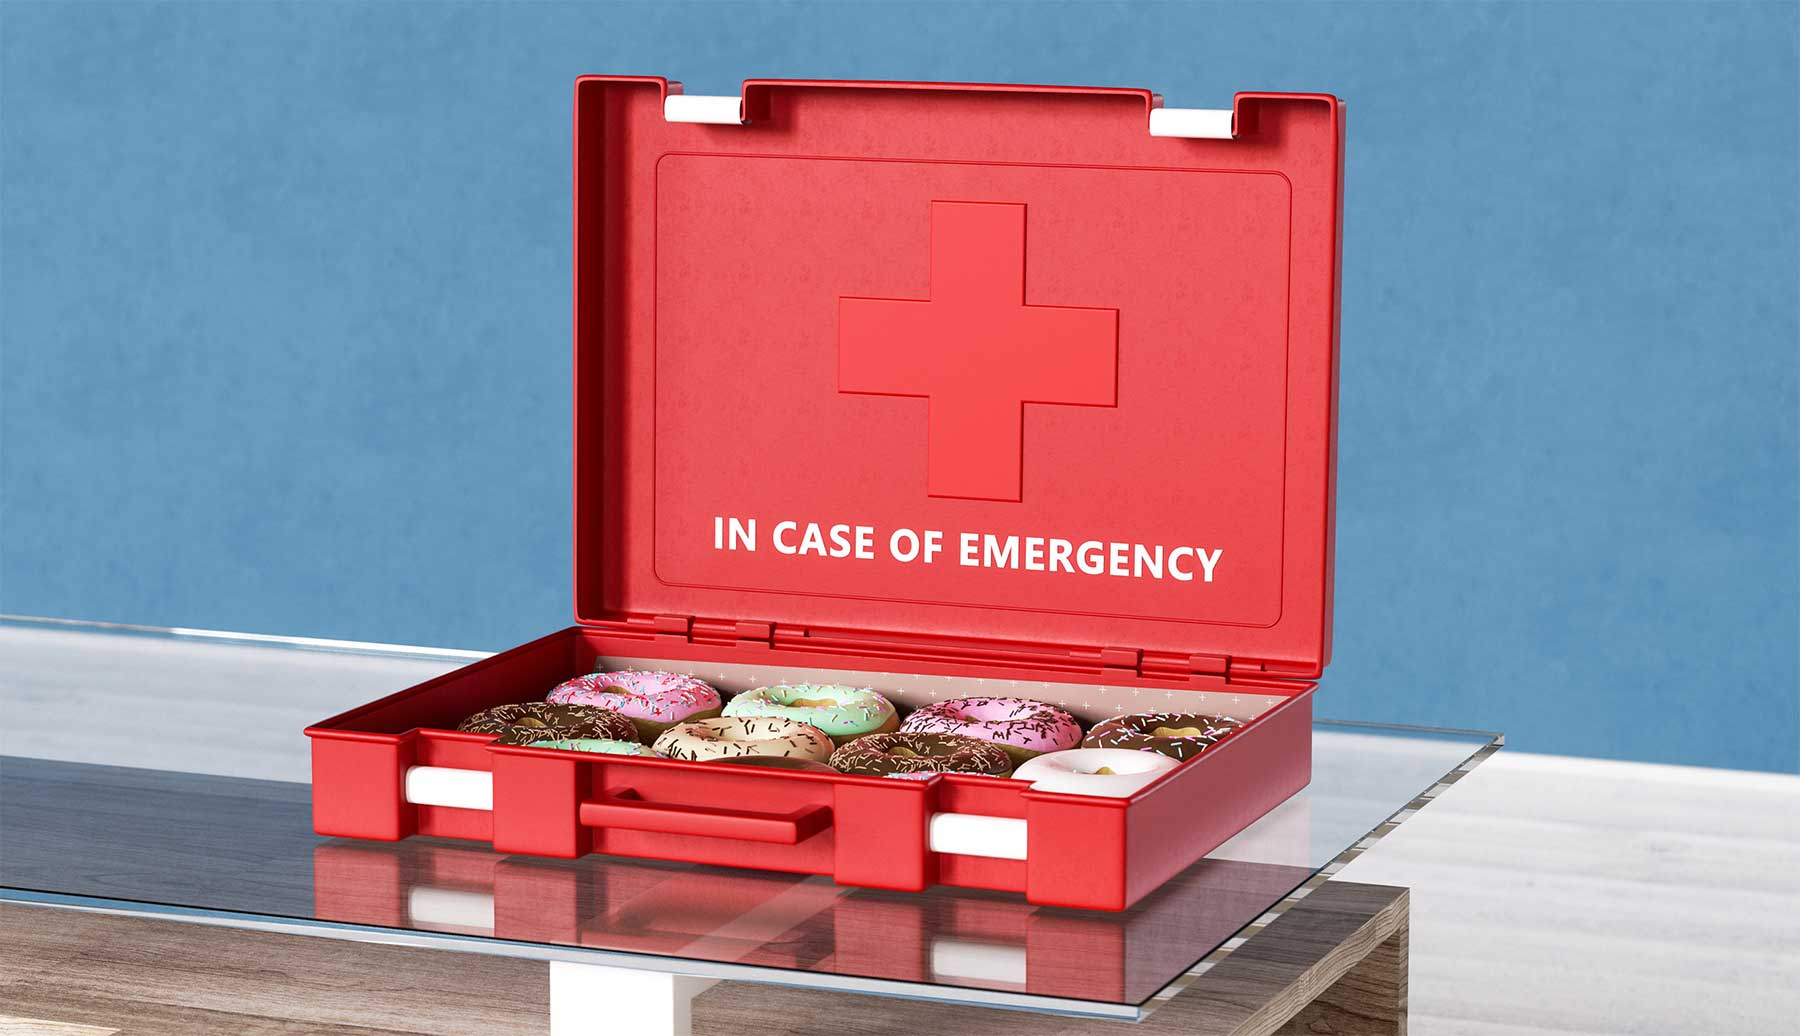 Notfall-Happen In-Case-of-Emergency-Ben-Fearnley_06